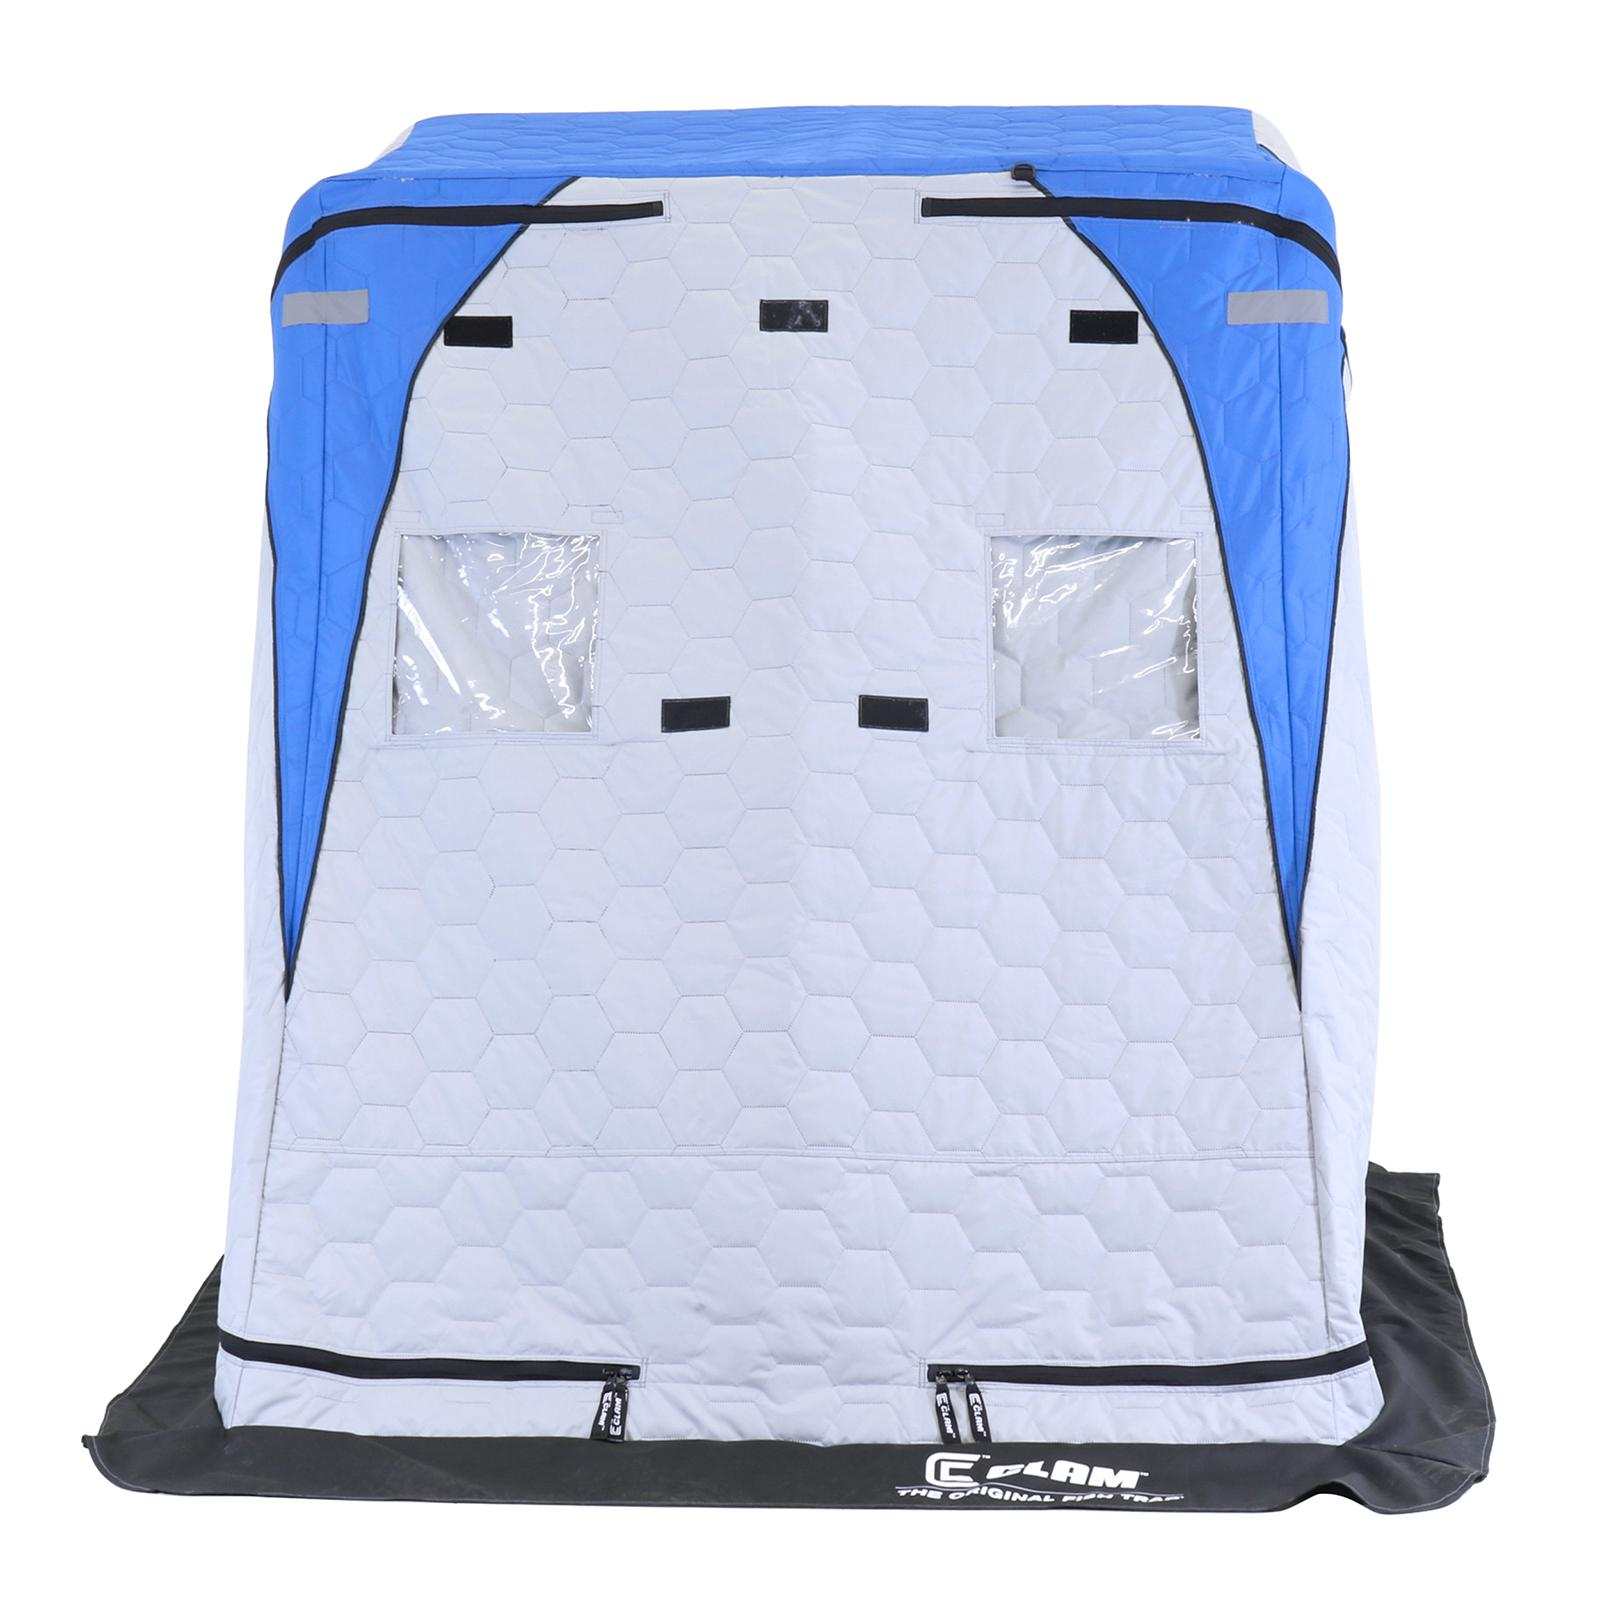 Clam Yukon XL Thermal Ice Shelter Front View with Cover Closed